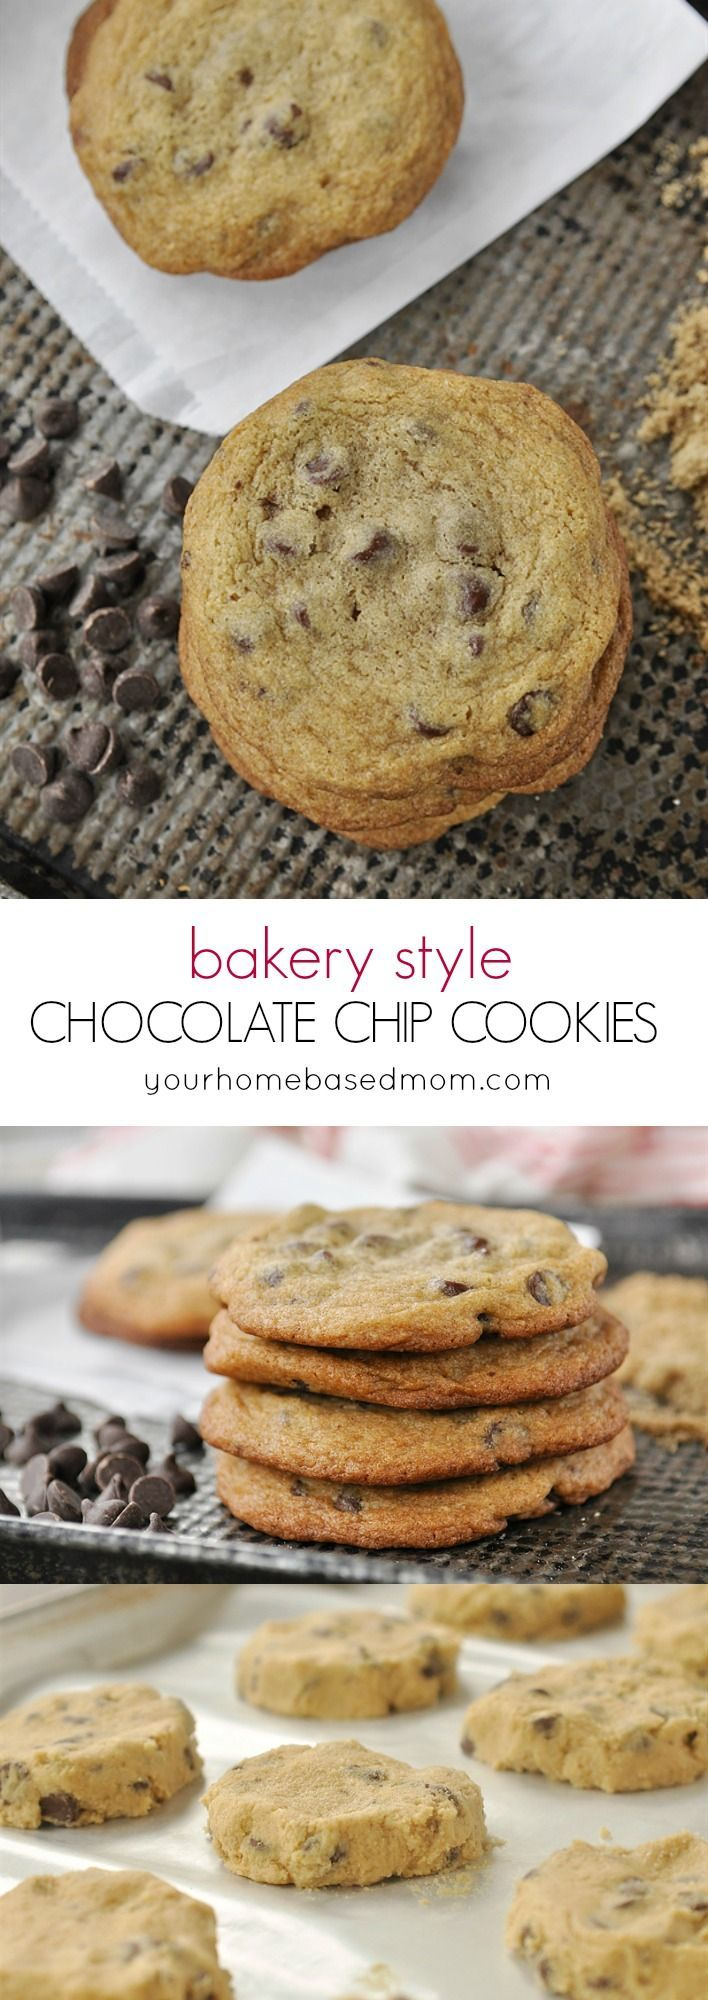 Bakery Style Chocolate Chip Cookies | Recipe | Chip cookies, The o ...